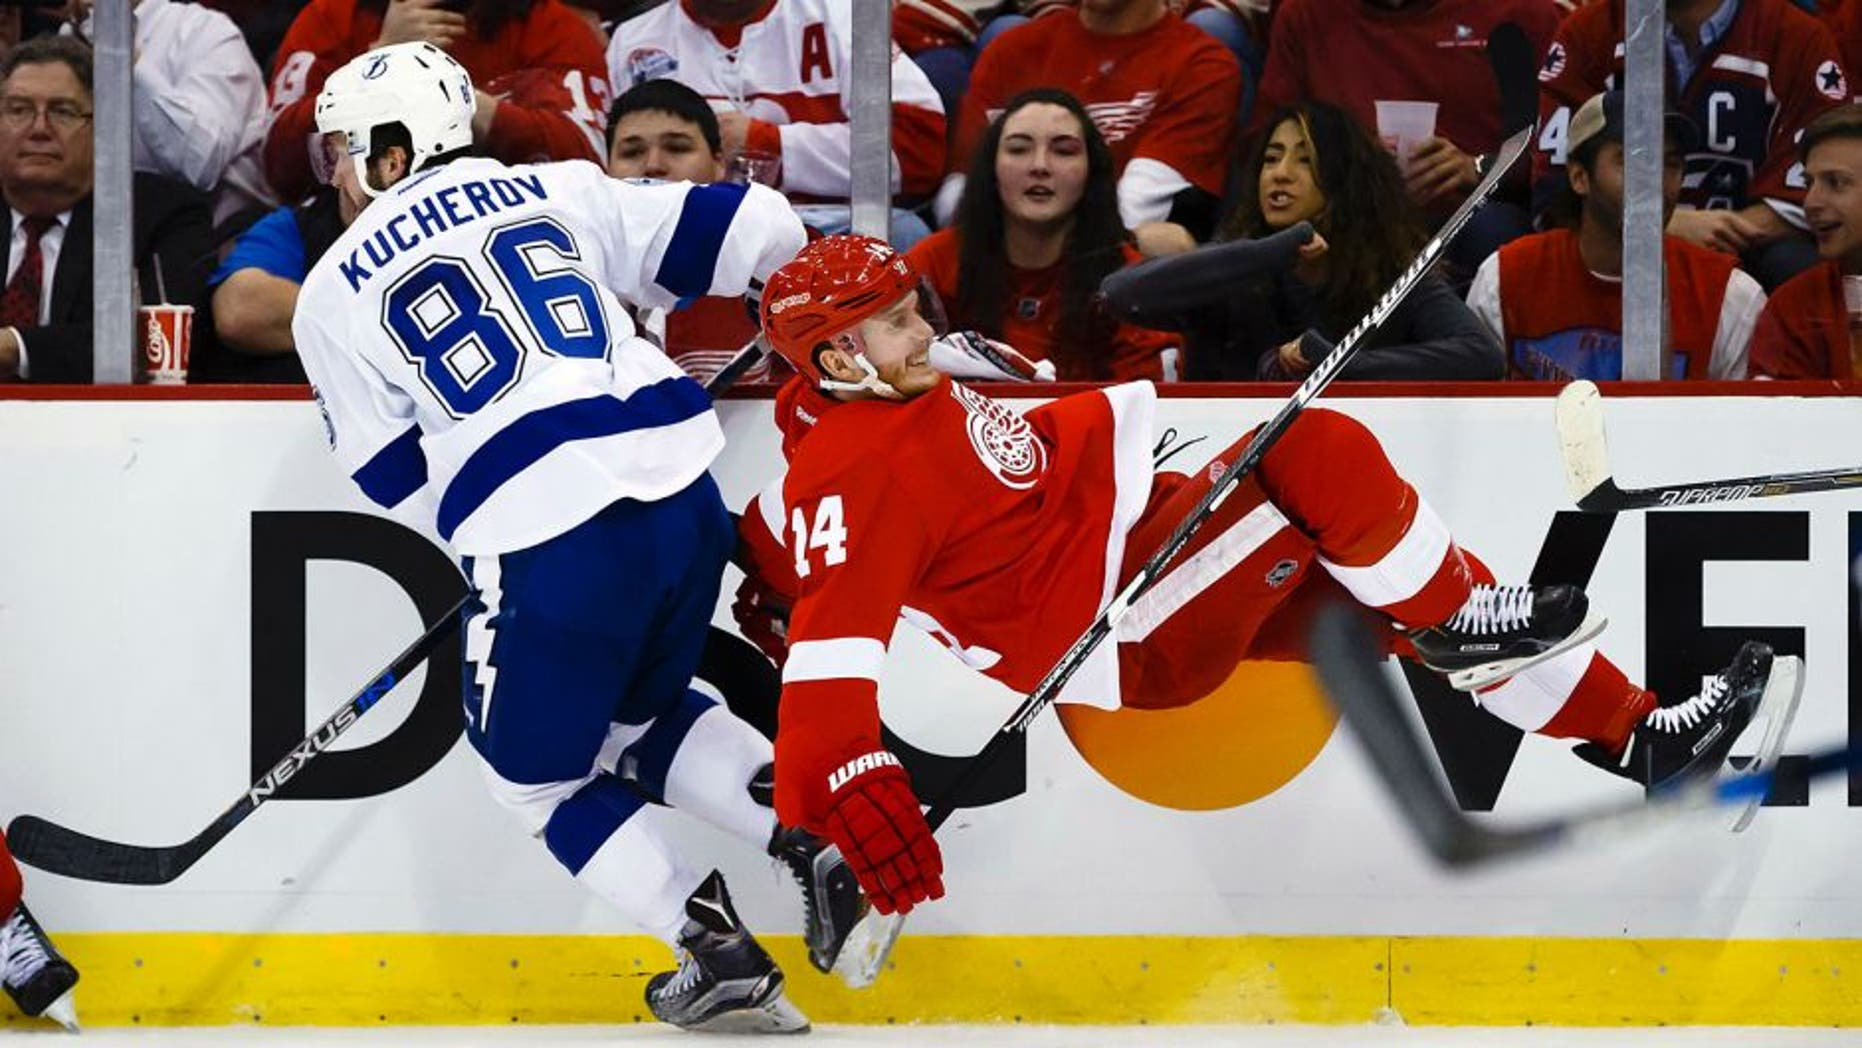 Apr 19, 2016; Detroit, MI, USA; Tampa Bay Lightning right wing Nikita Kucherov (86) checks Detroit Red Wings center Gustav Nyquist (14) during the second period in game four of the first round of the 2016 Stanley Cup Playoffs at Joe Louis Arena. Mandatory Credit: Rick Osentoski-USA TODAY Sports